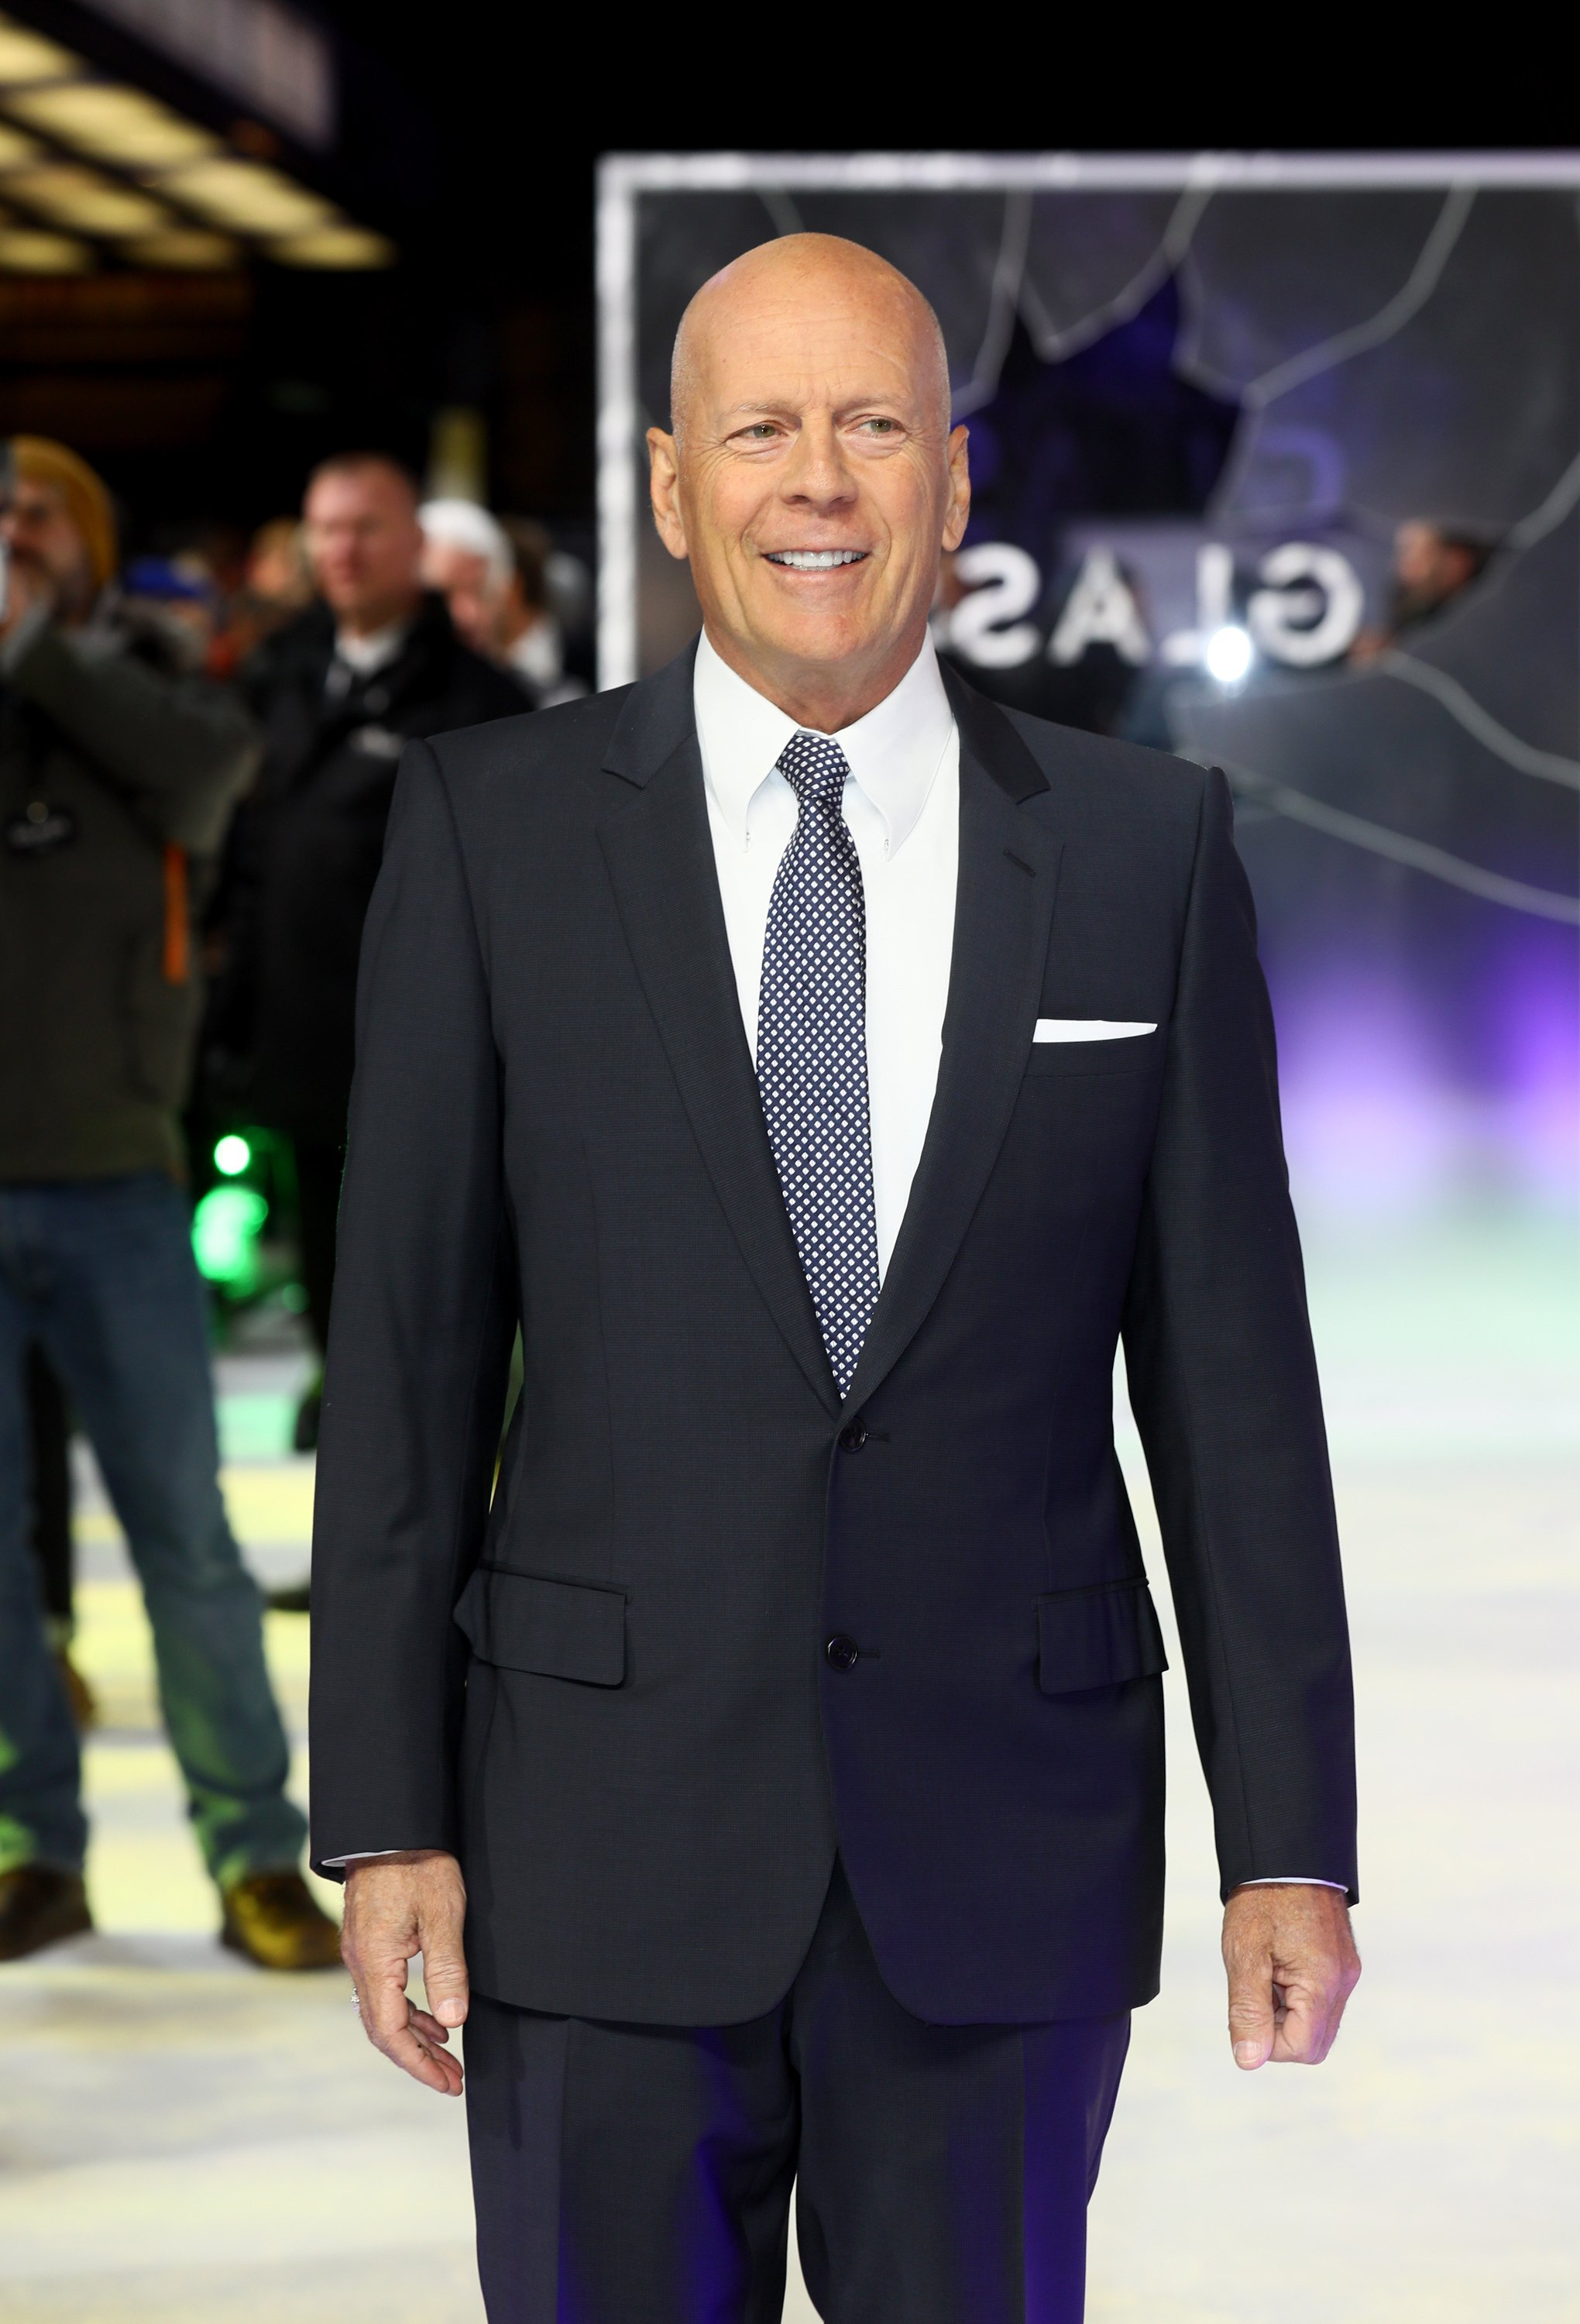 """Bruce Willis attends the UK Premiere of M. Night Shyamalan's all-new comic-book thriller """"Glass"""" at Curzon Cinema Mayfair on January 9, 2019, in London, England. 